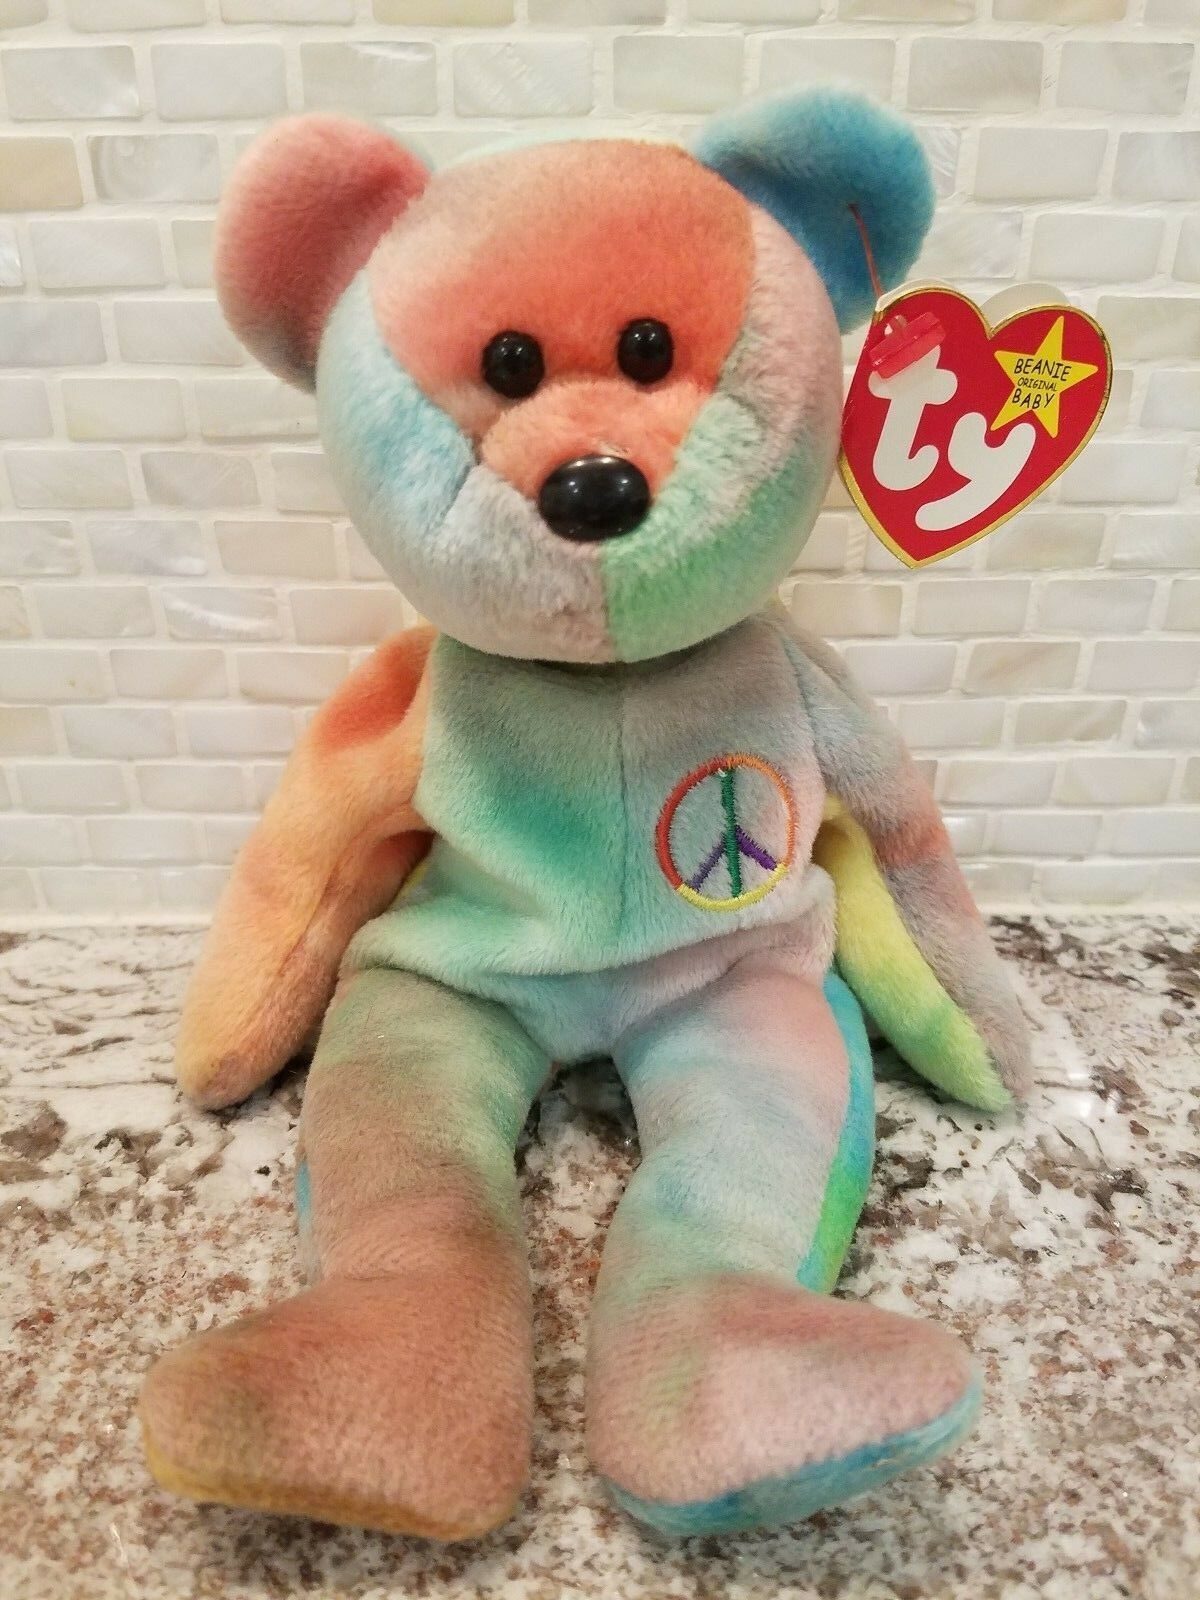 beanie babies phenomenon Crazes prior to beanie babies took years to gain traction, however beanie babies were able to become a worldwide phenomenon within months due to the ability of people to create web pages and share information on the internet.